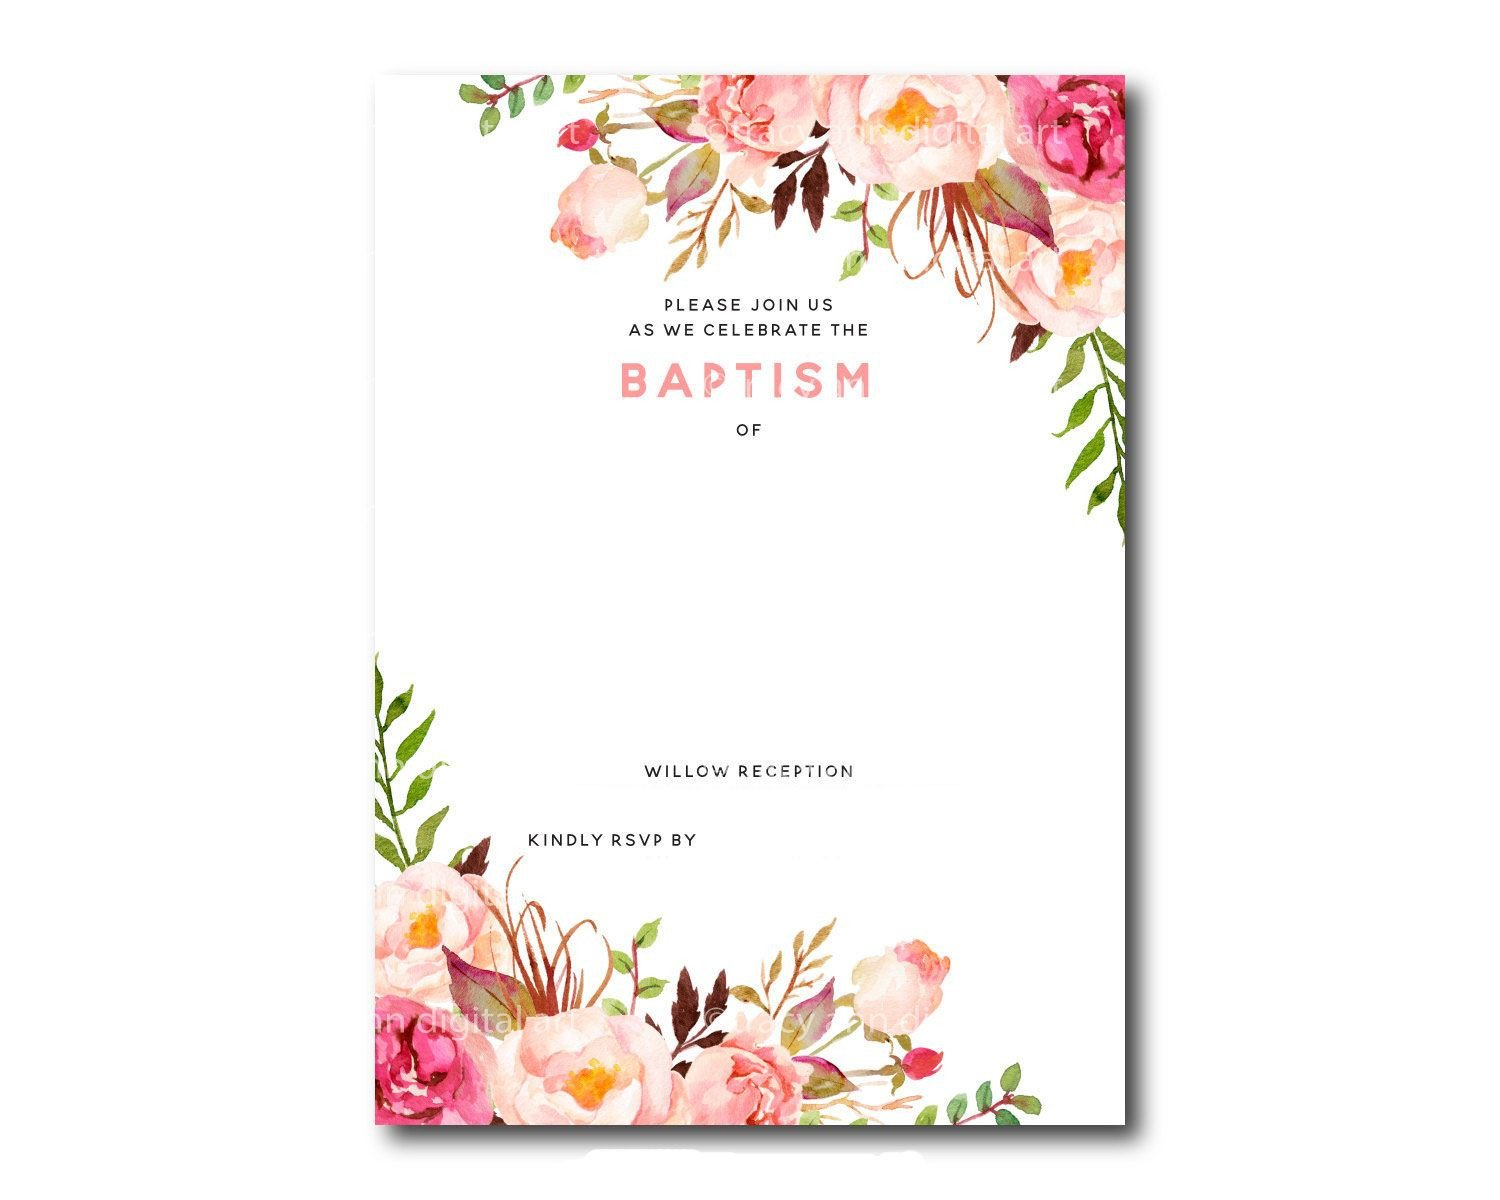 Free Download Invite Templates Awesome Free Template Free Printable Baptism Floral